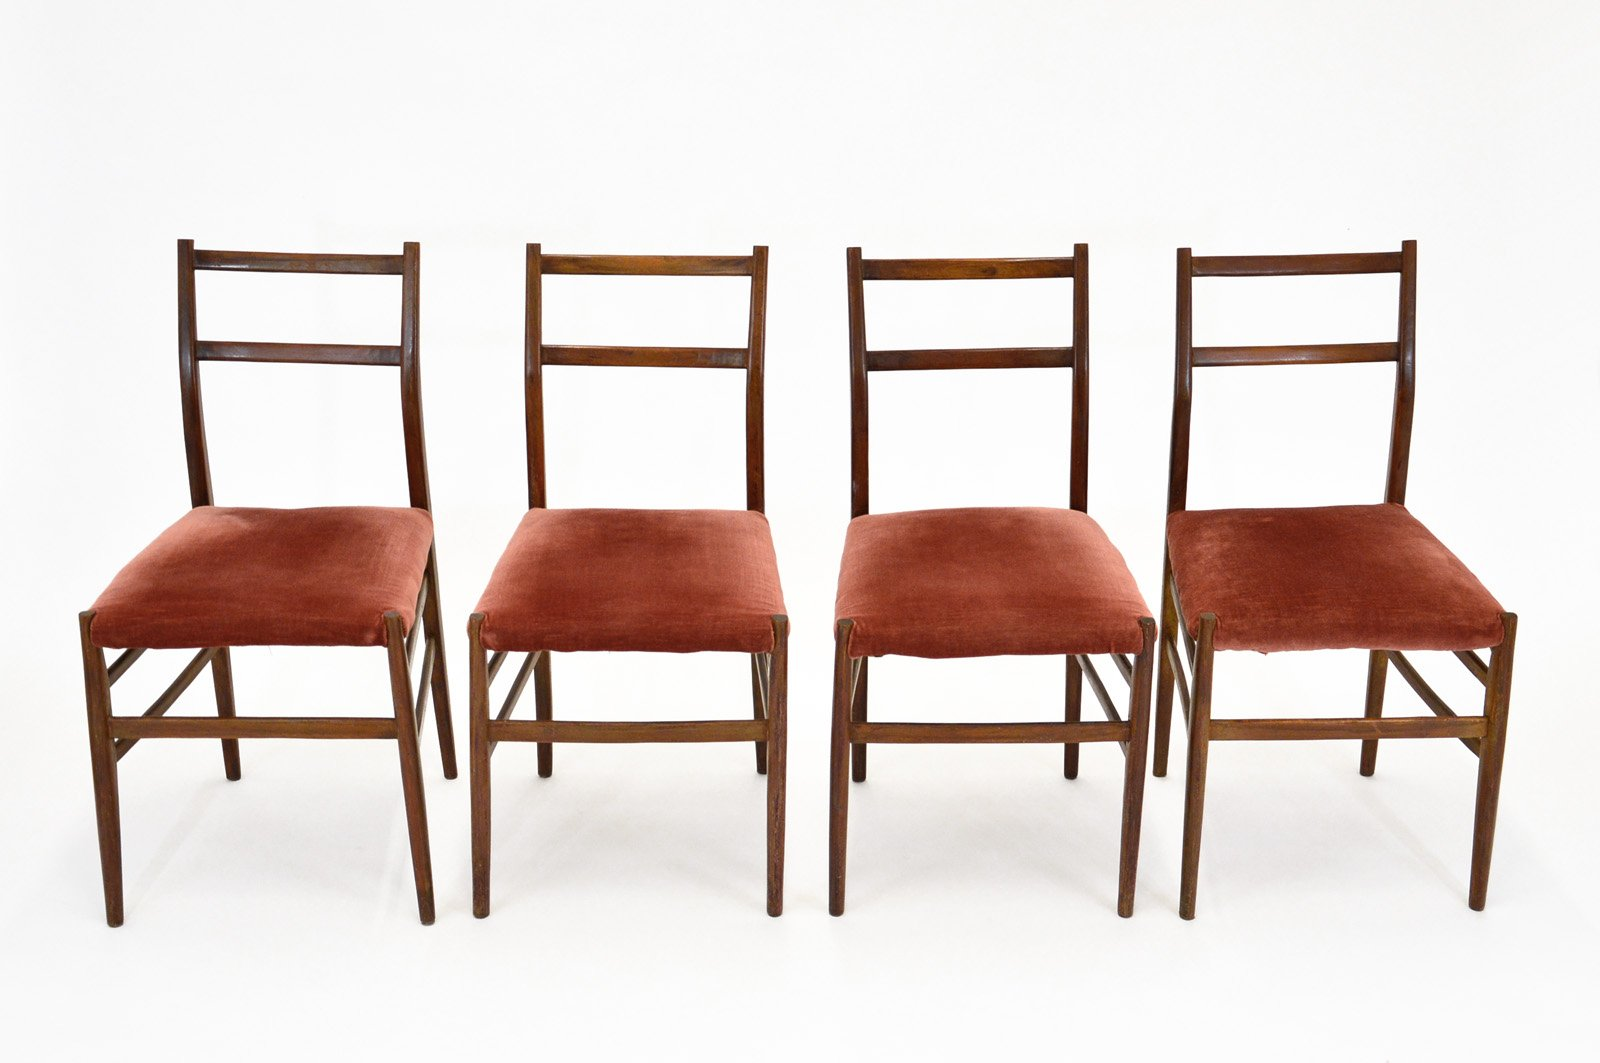 Mid Century Leggera Chairs By Gio Ponti For Cassina, Set Of 4